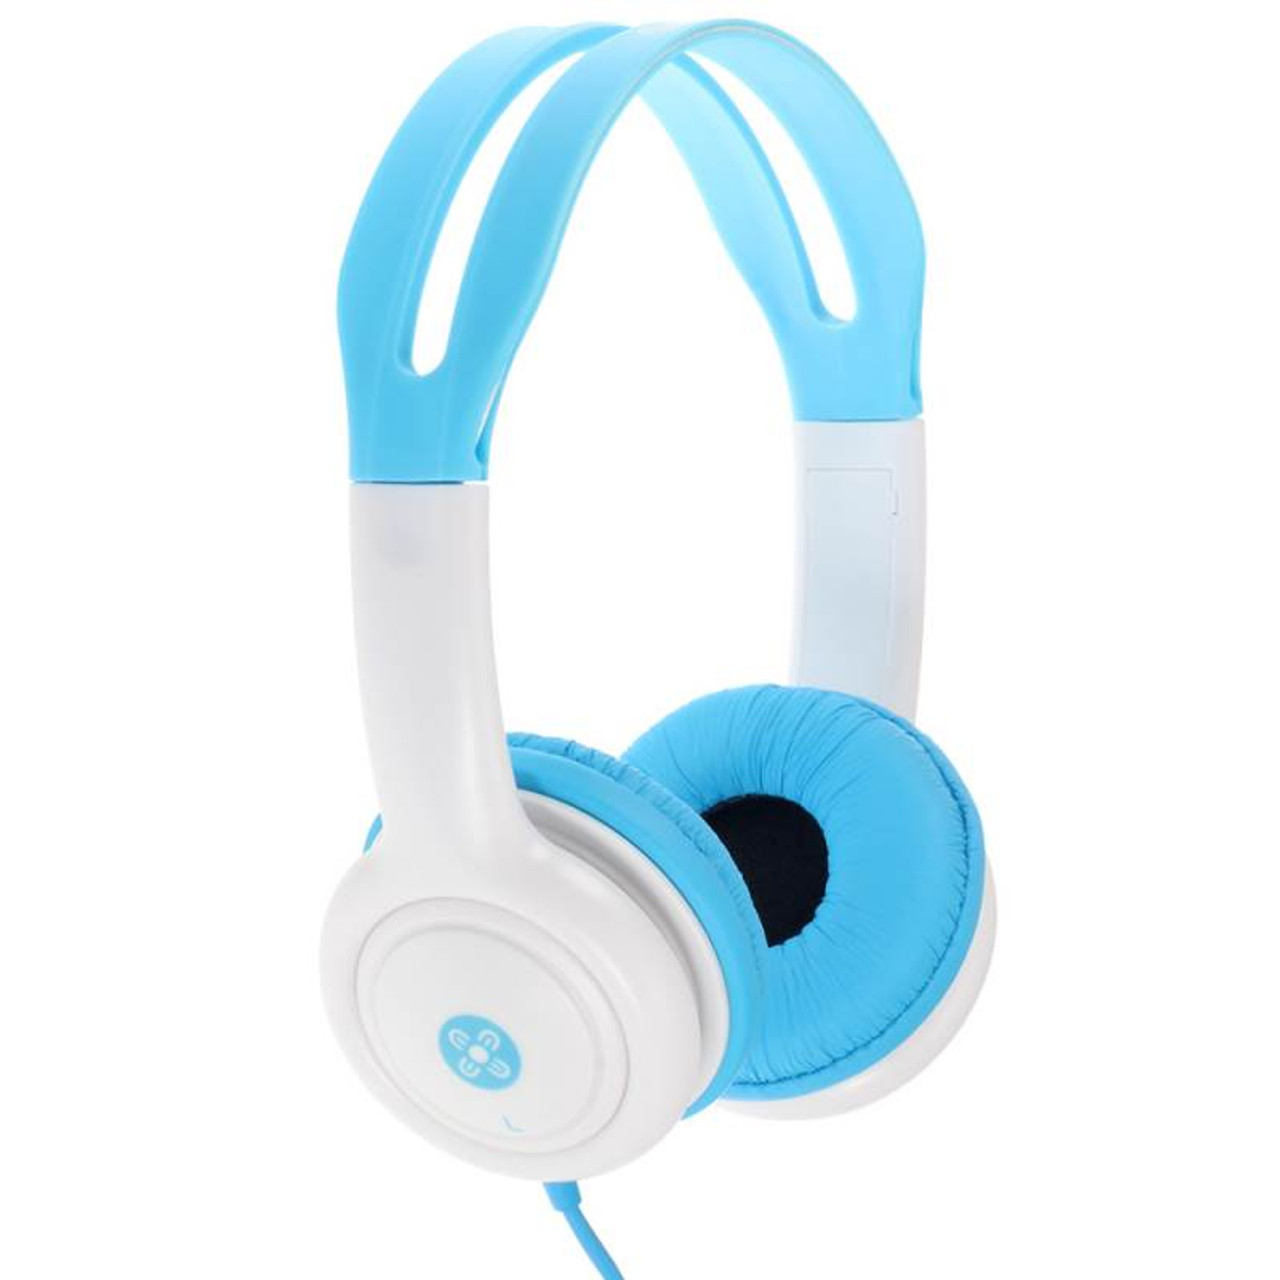 Image for Moki Volume Limited Headphones for Kids - Blue CX Computer Superstore